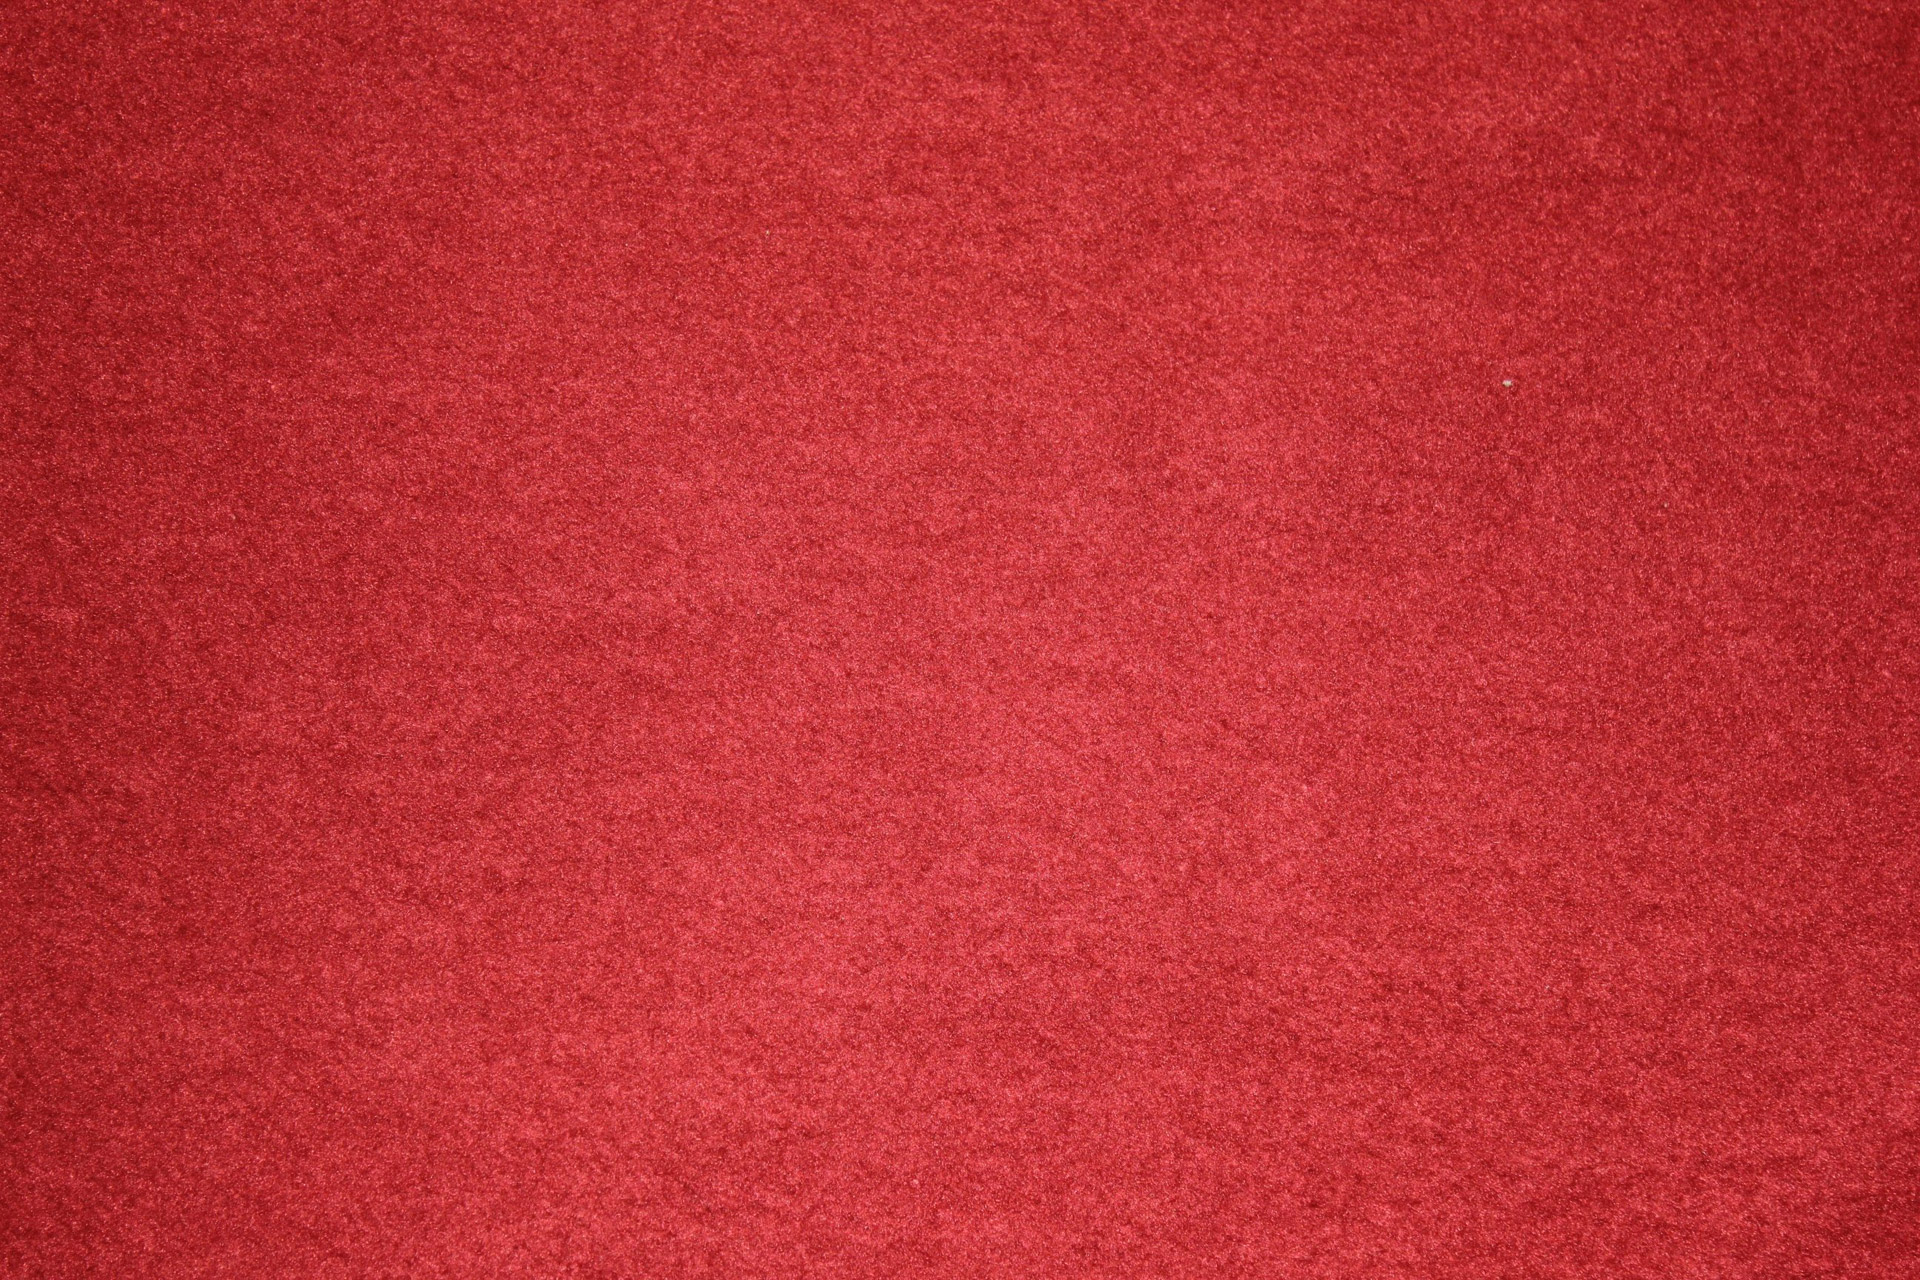 Red Smooth Texture